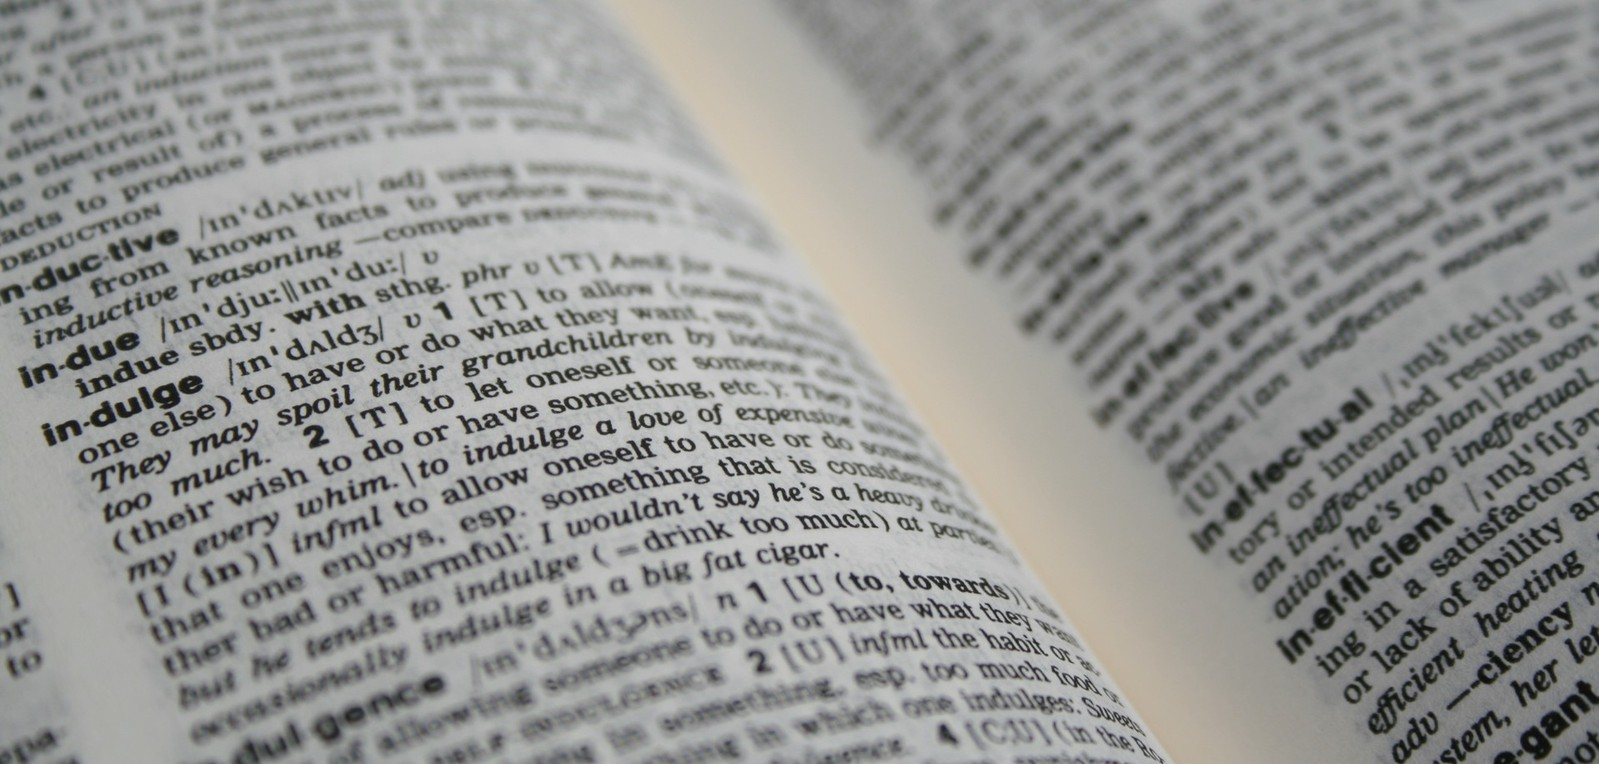 translate 500 words from English to Portuguese and vice versa